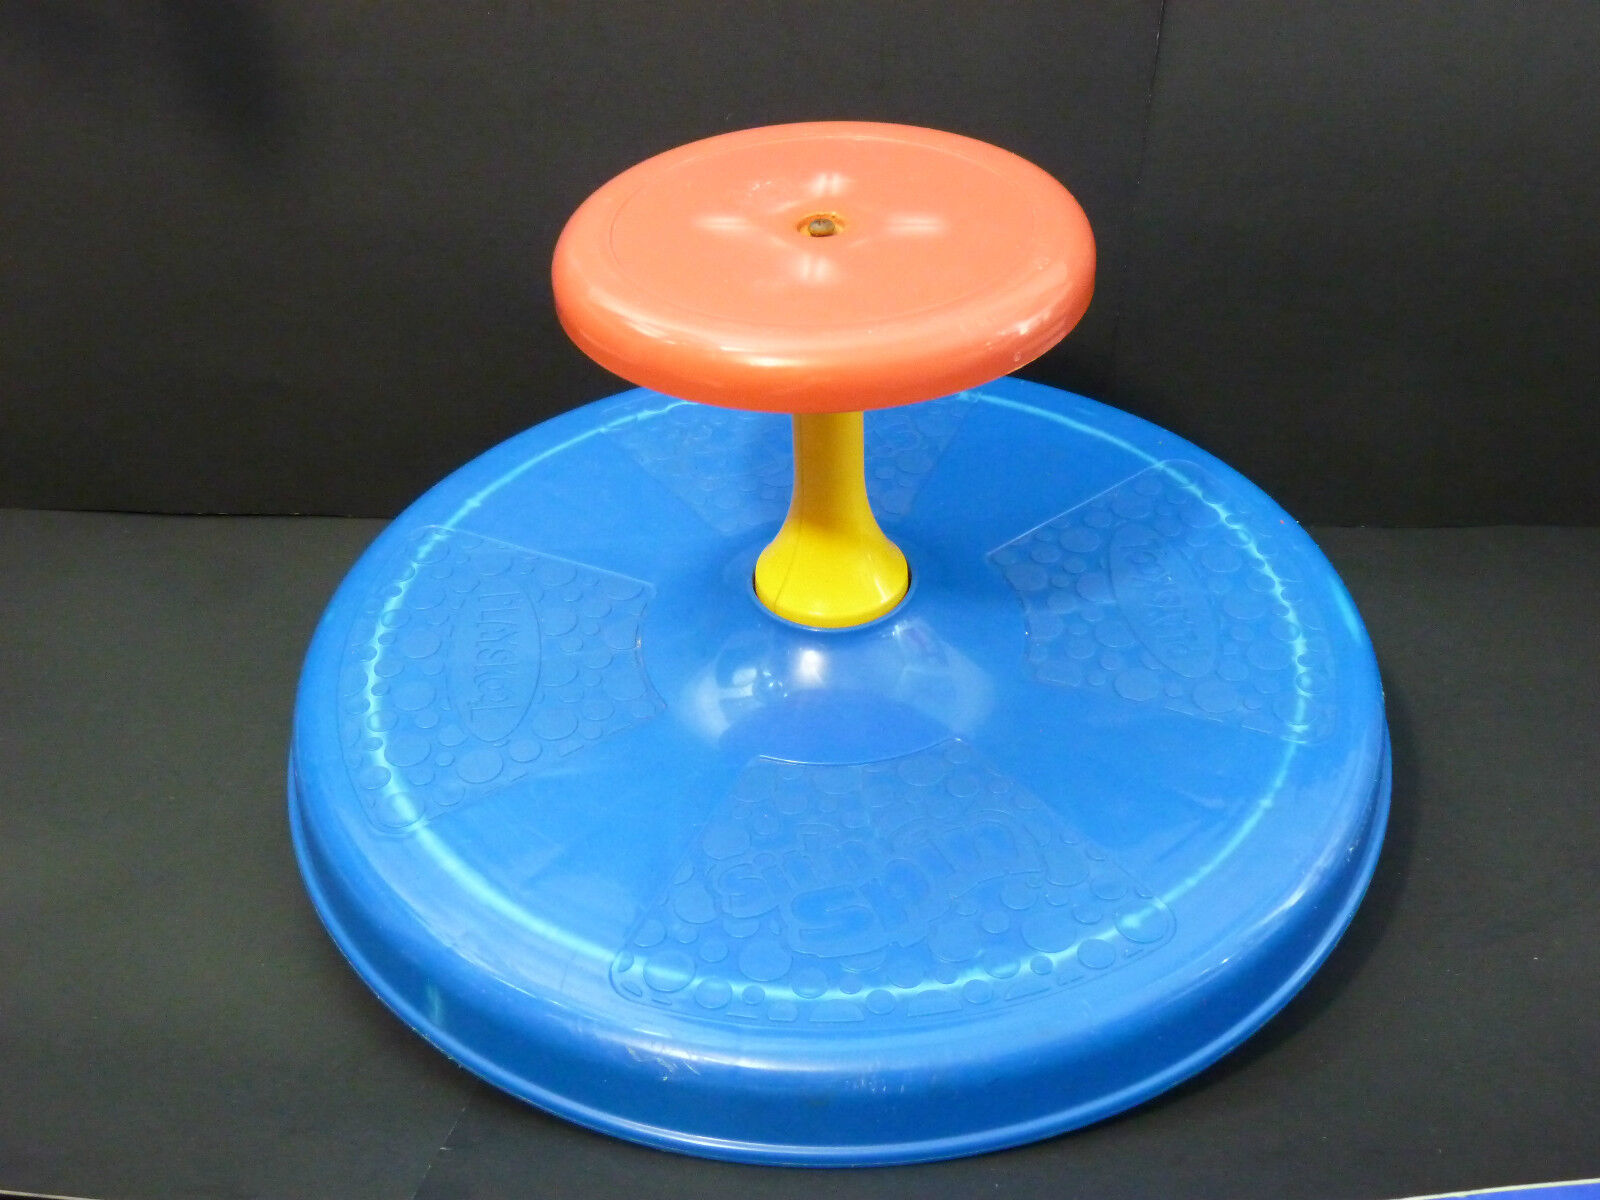 Vintage 1973 Sit'n Spin Spinning Action Toy Playskool Tonka  bluee   Red   Yellow